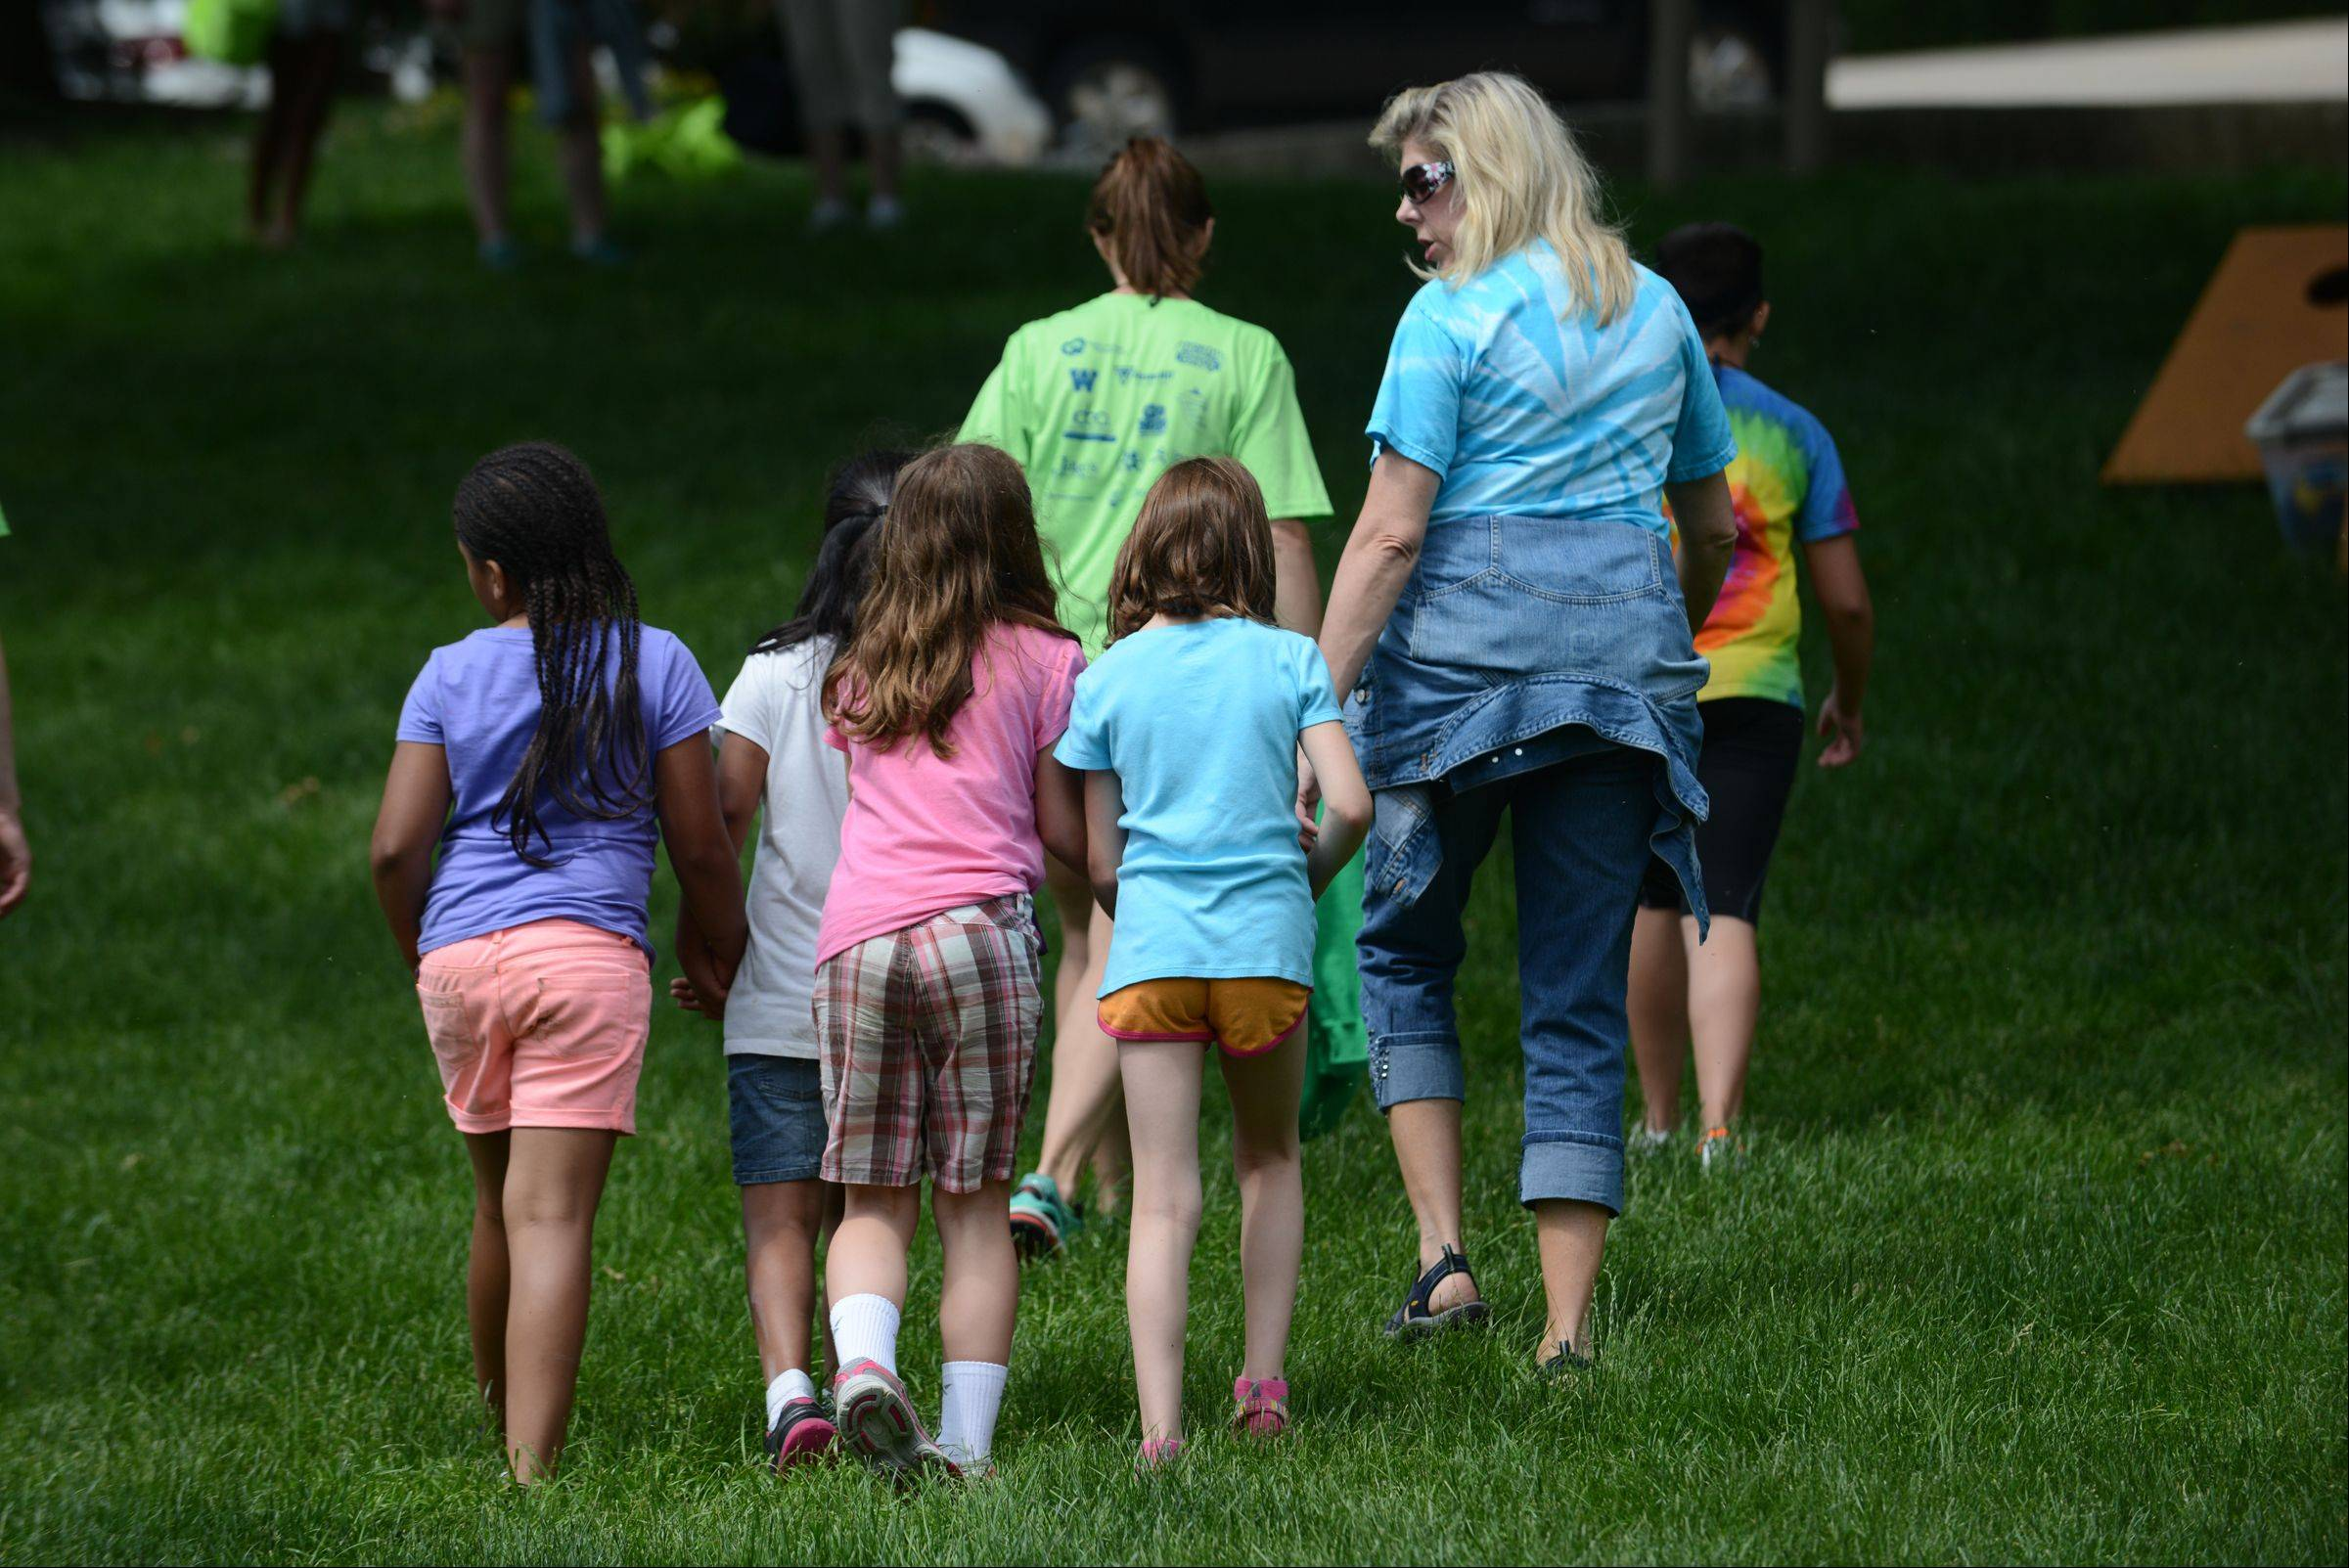 Royal Family Kids Camp counselor Karen Farley of Geneva leads a group of girls to one of the afternoon activities at the camp in Wisconsin.